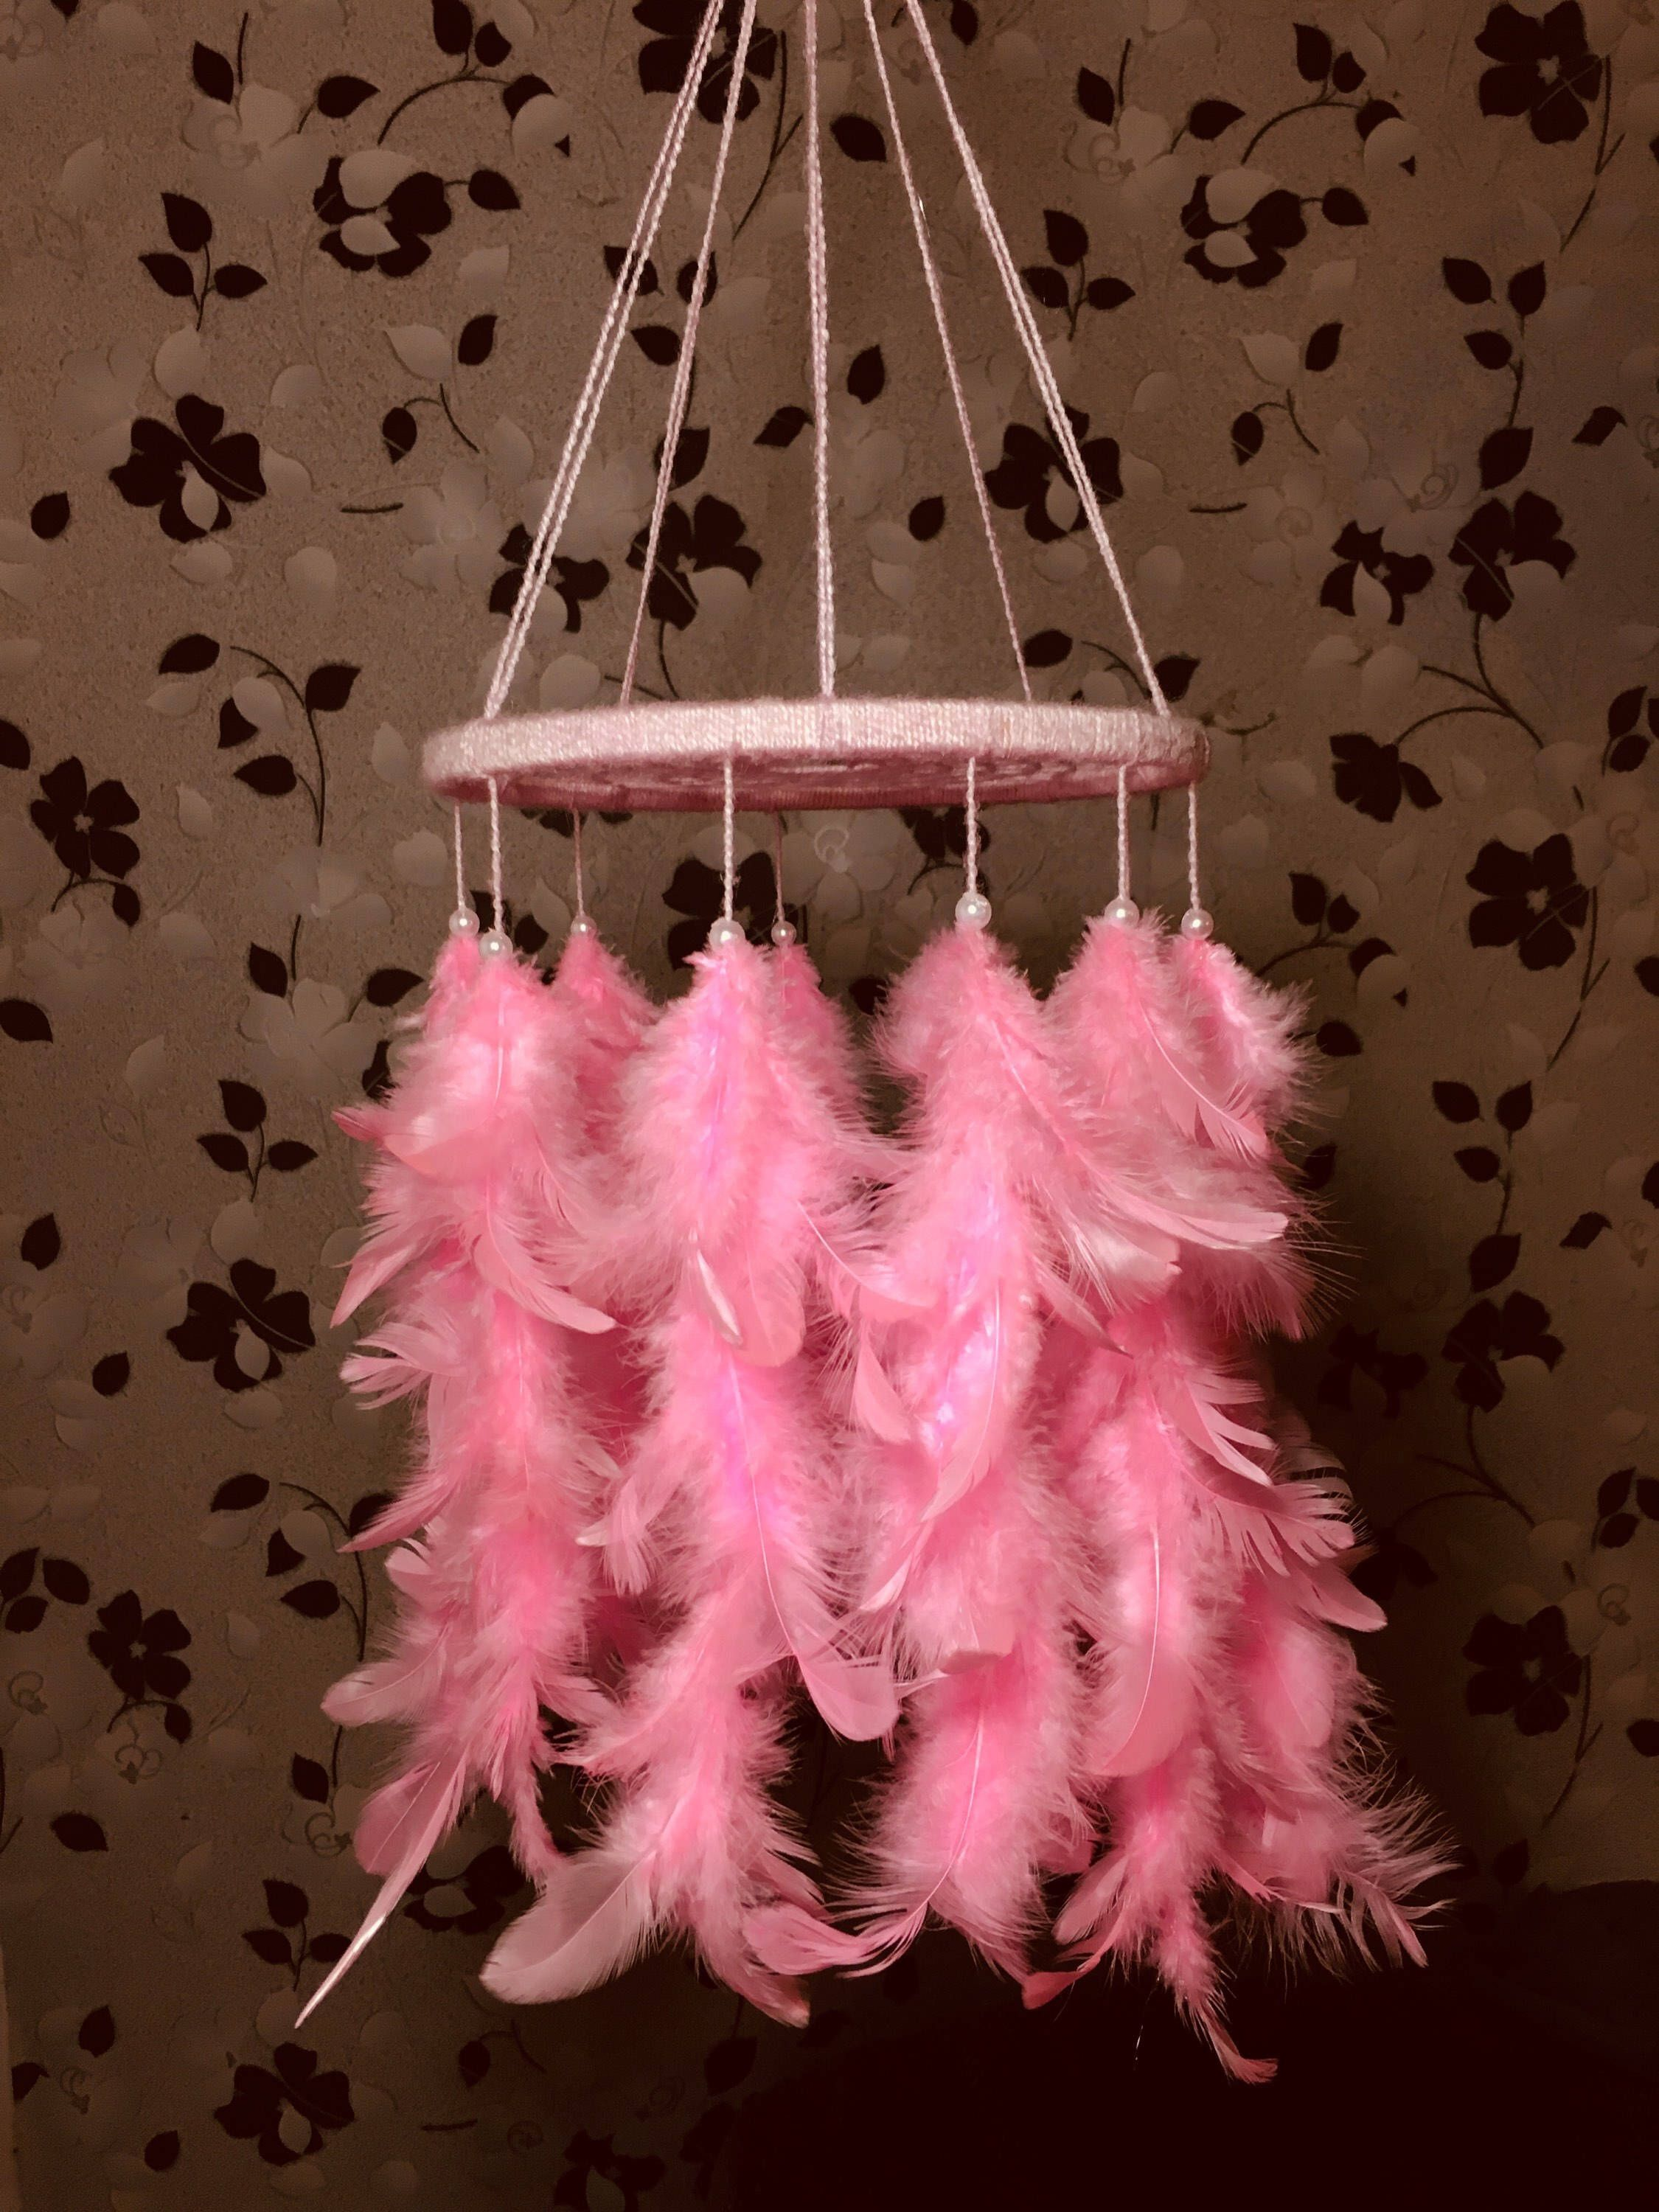 Baby mobile girl mobile dream catcher mobile boho nursery dreamcatcher cream ivory light pink feather mobile baby shower mobile images